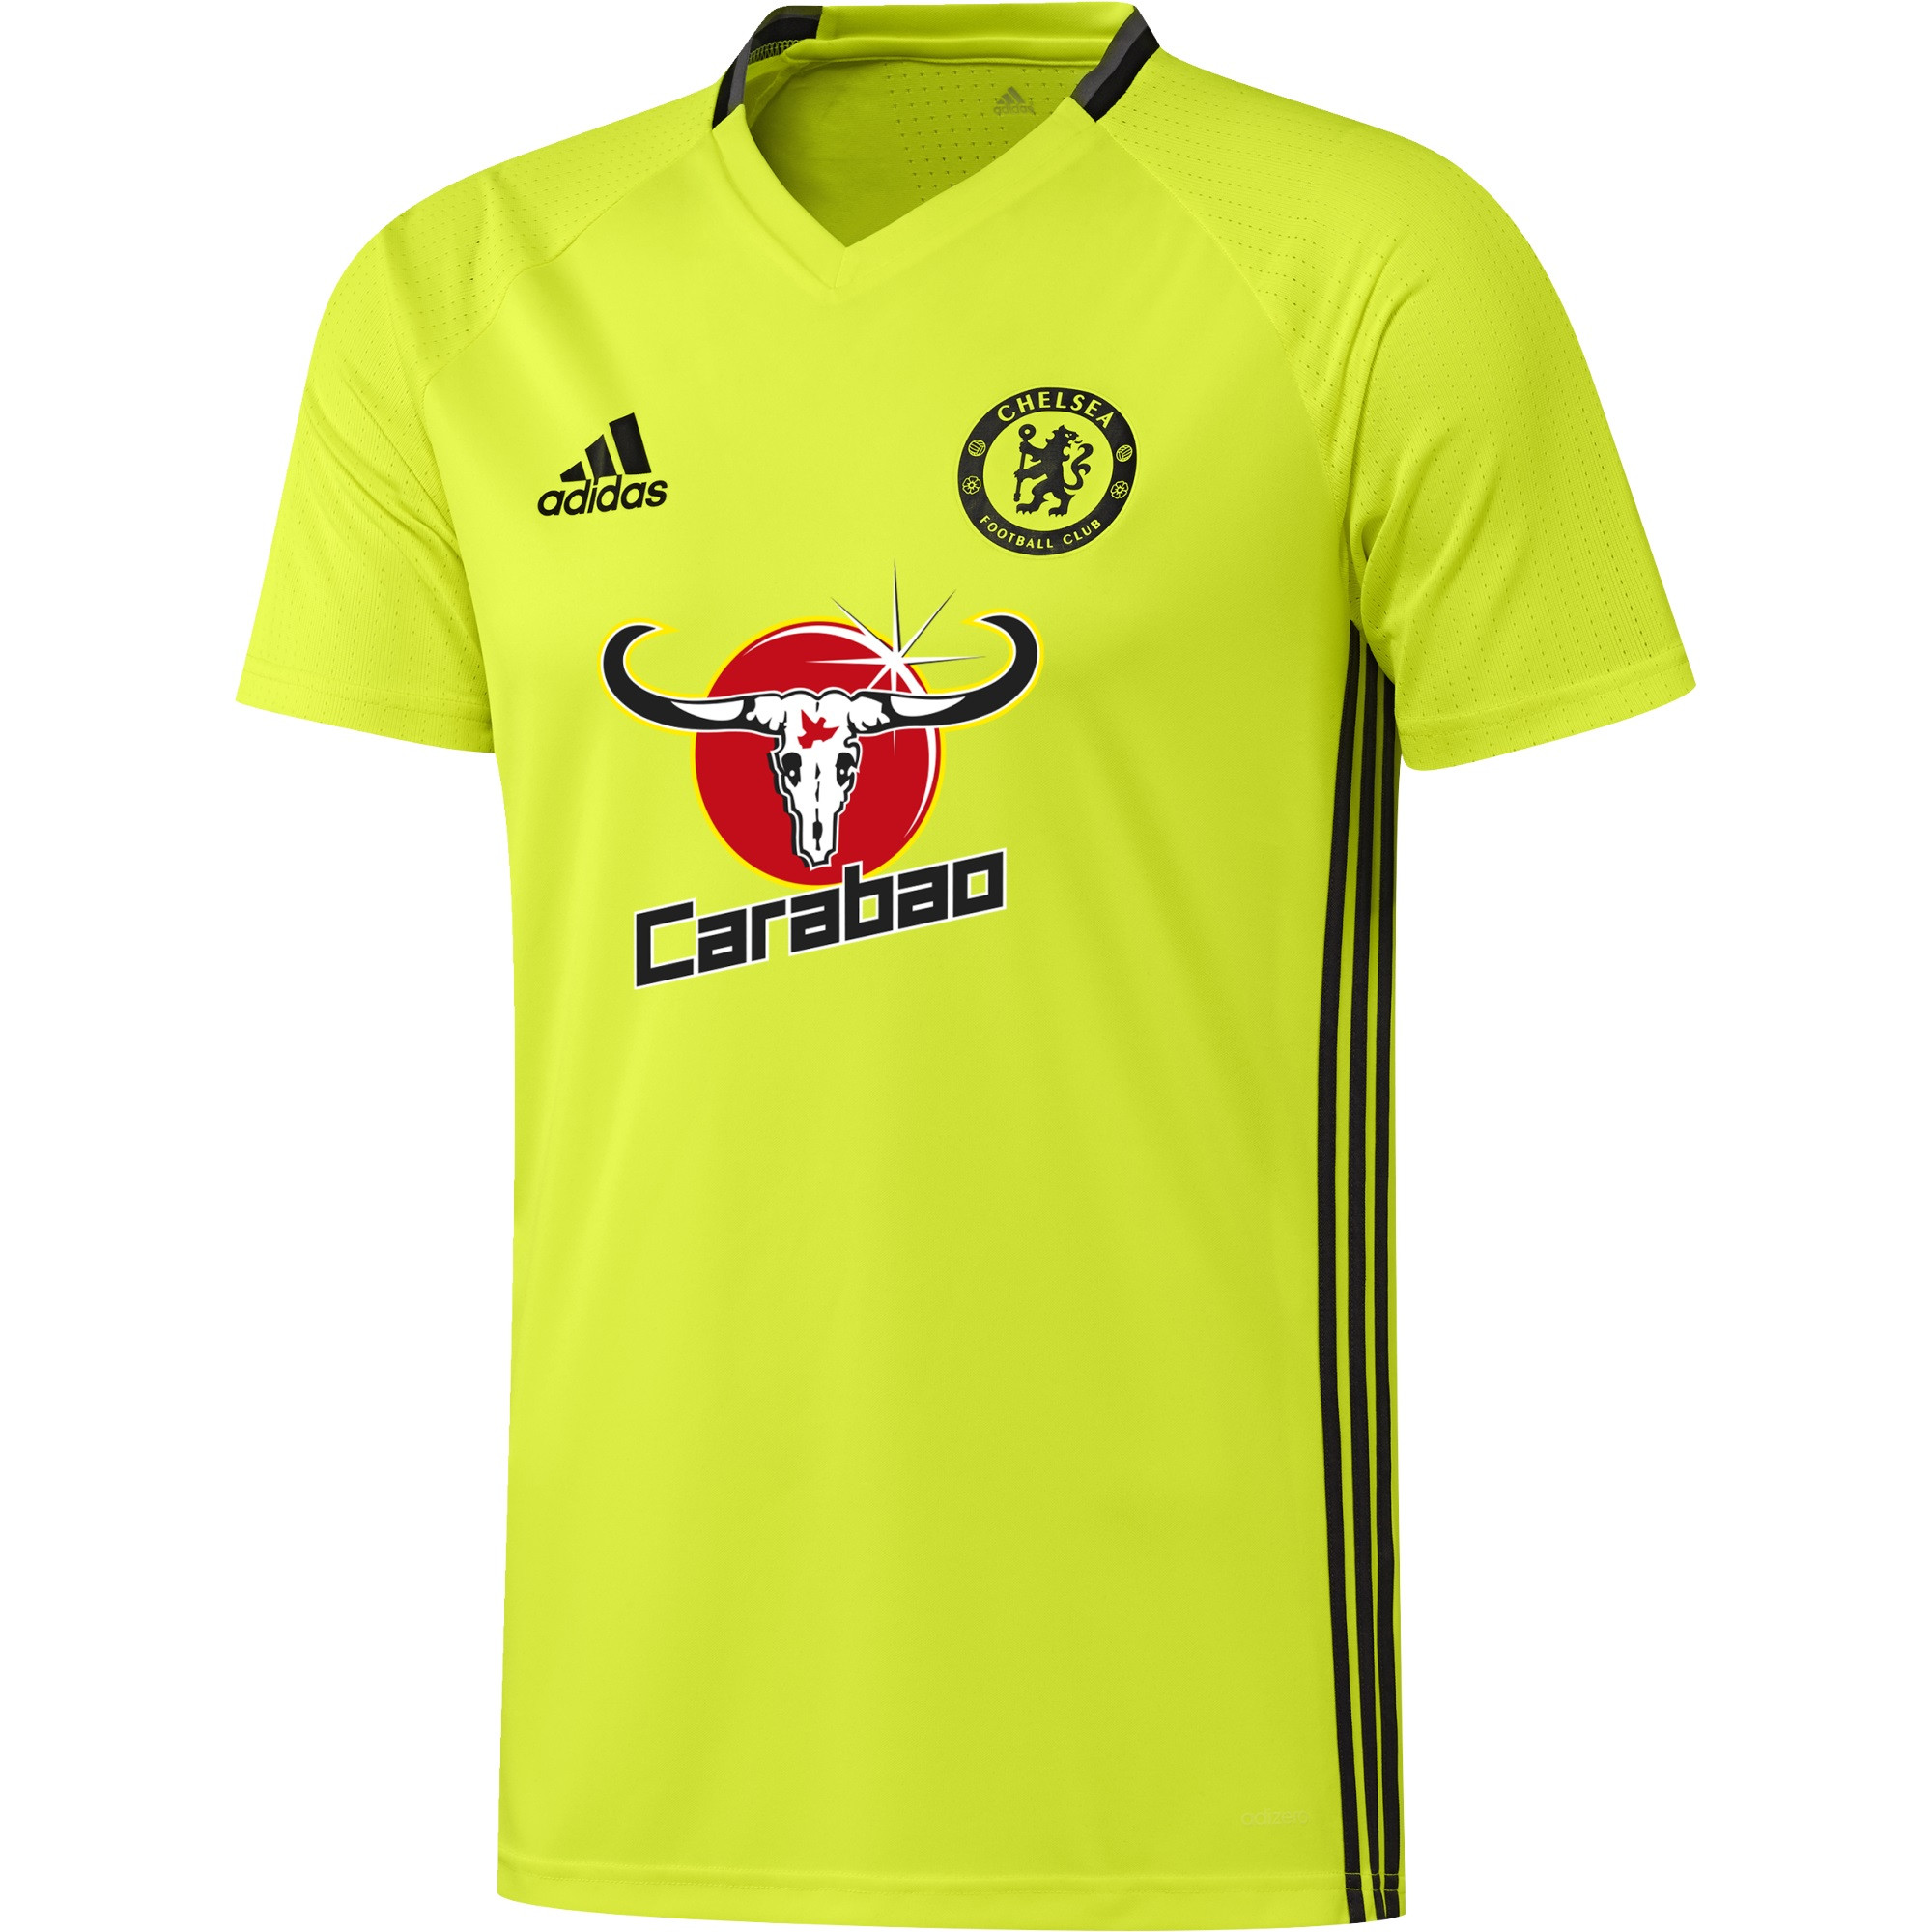 ADIDAS CHELSEA MAILLOT ENTRAINEMENT JAUNE FLUO 20162017